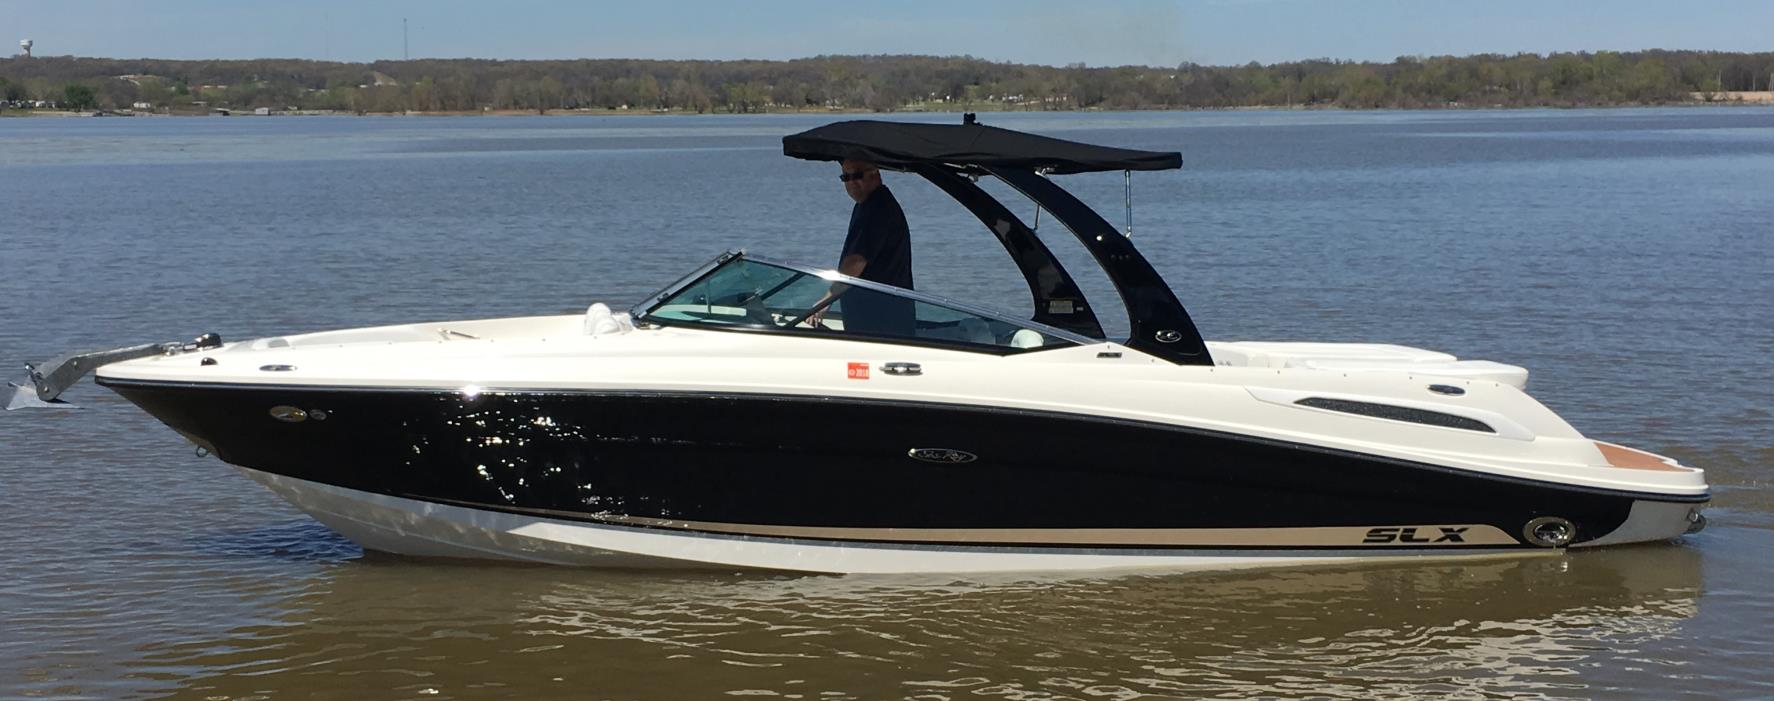 2014 Sea Ray 250 Select